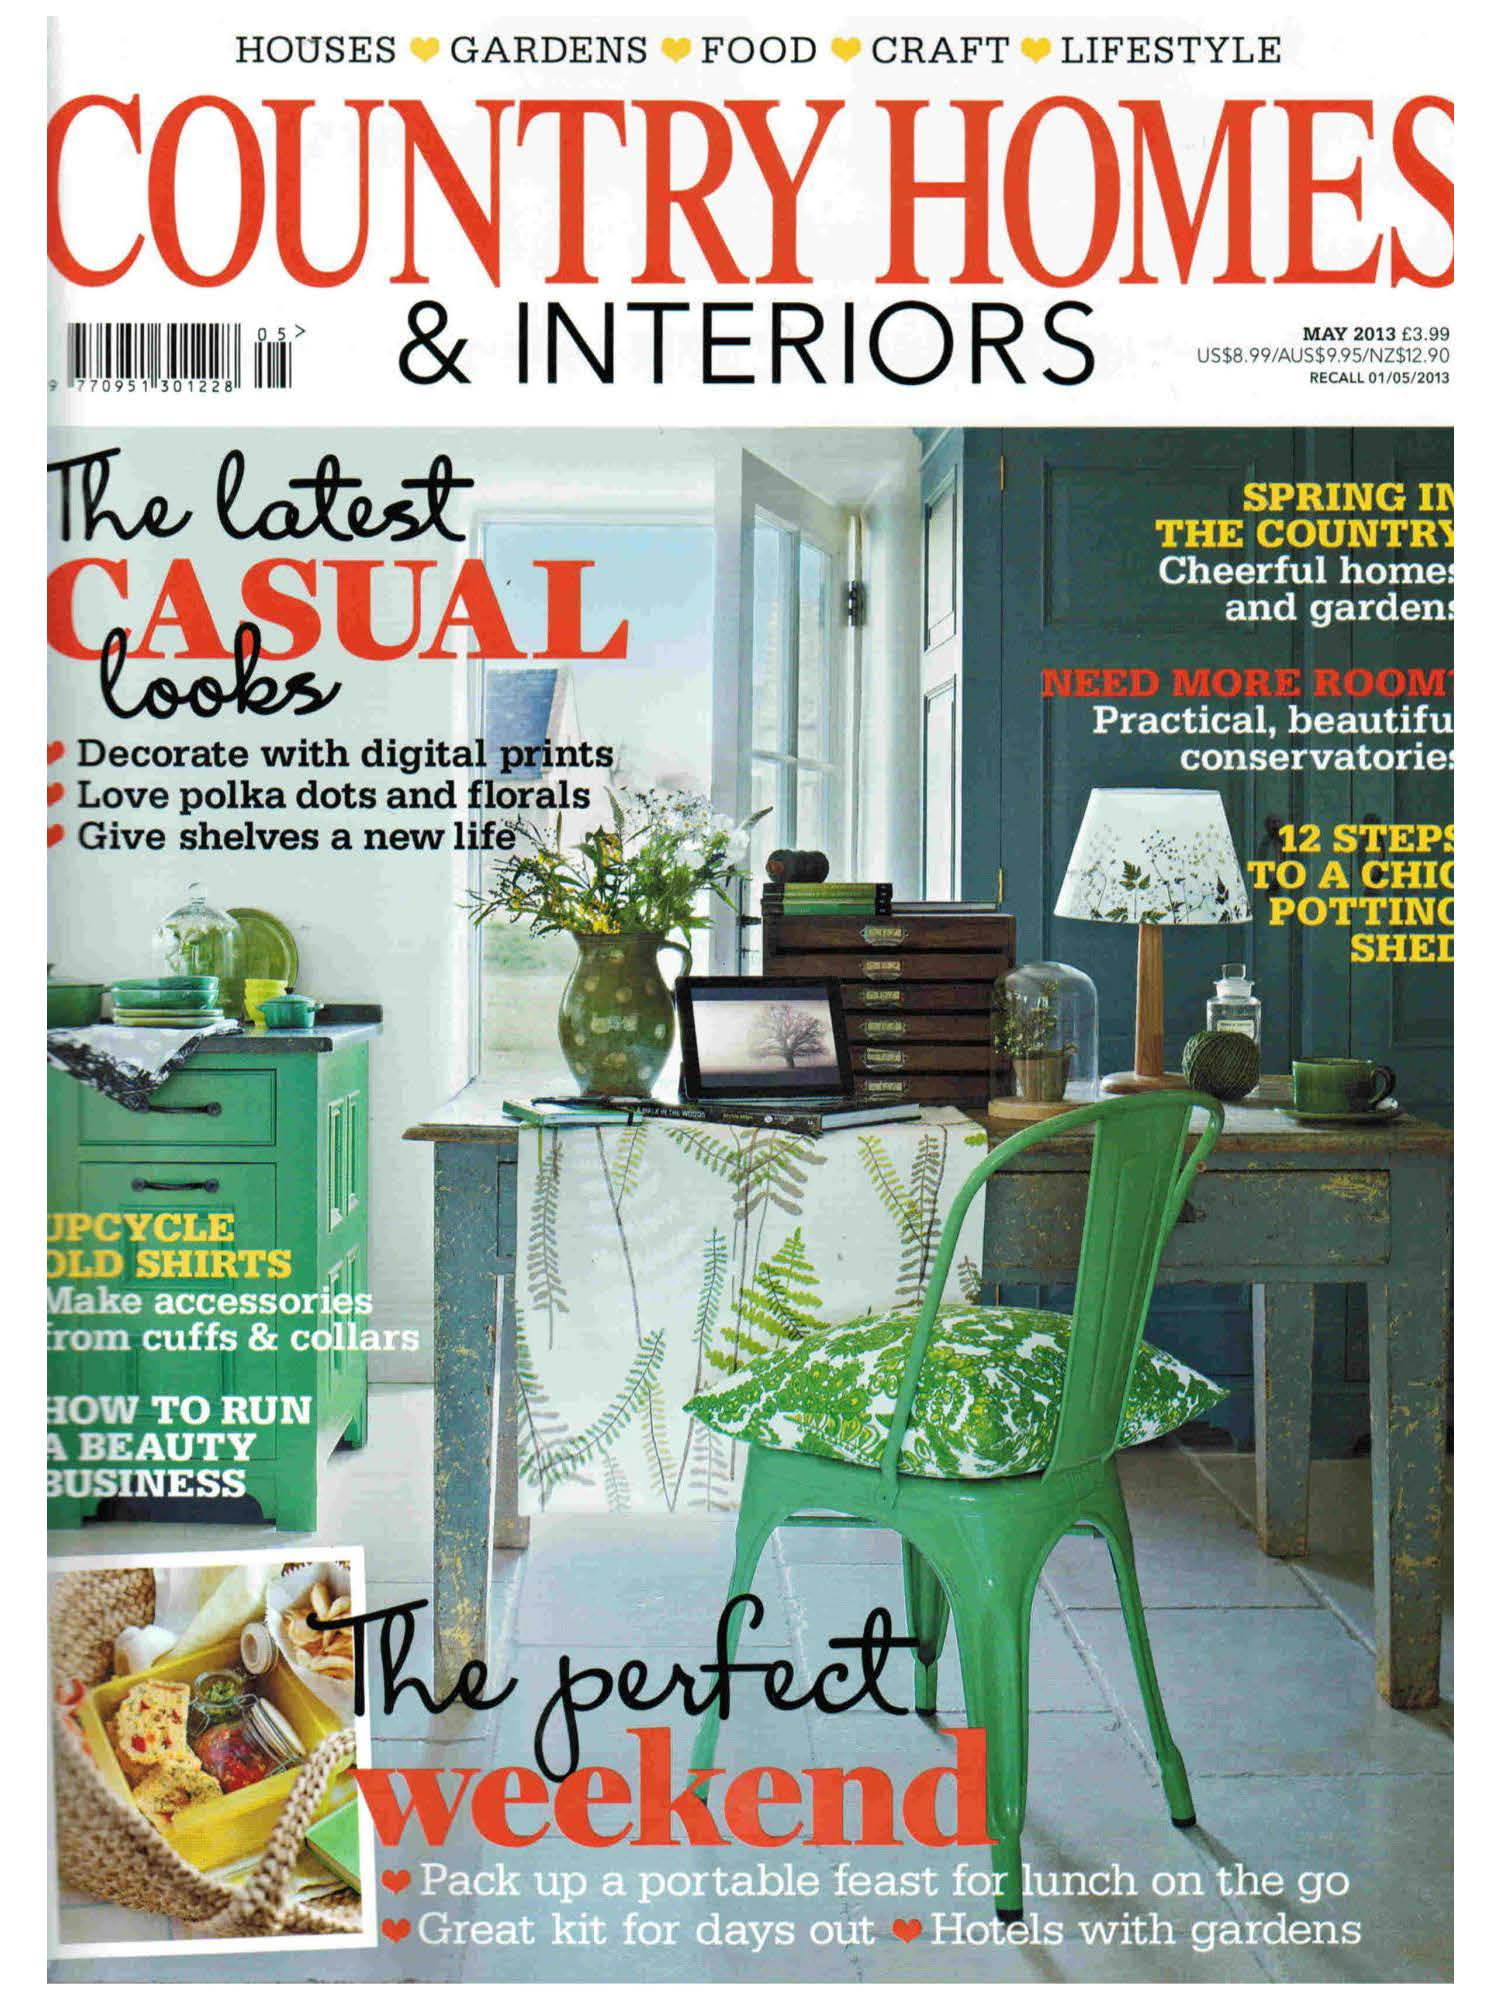 dog, dogs, style, magazine, press, editorial, country homes, interiors